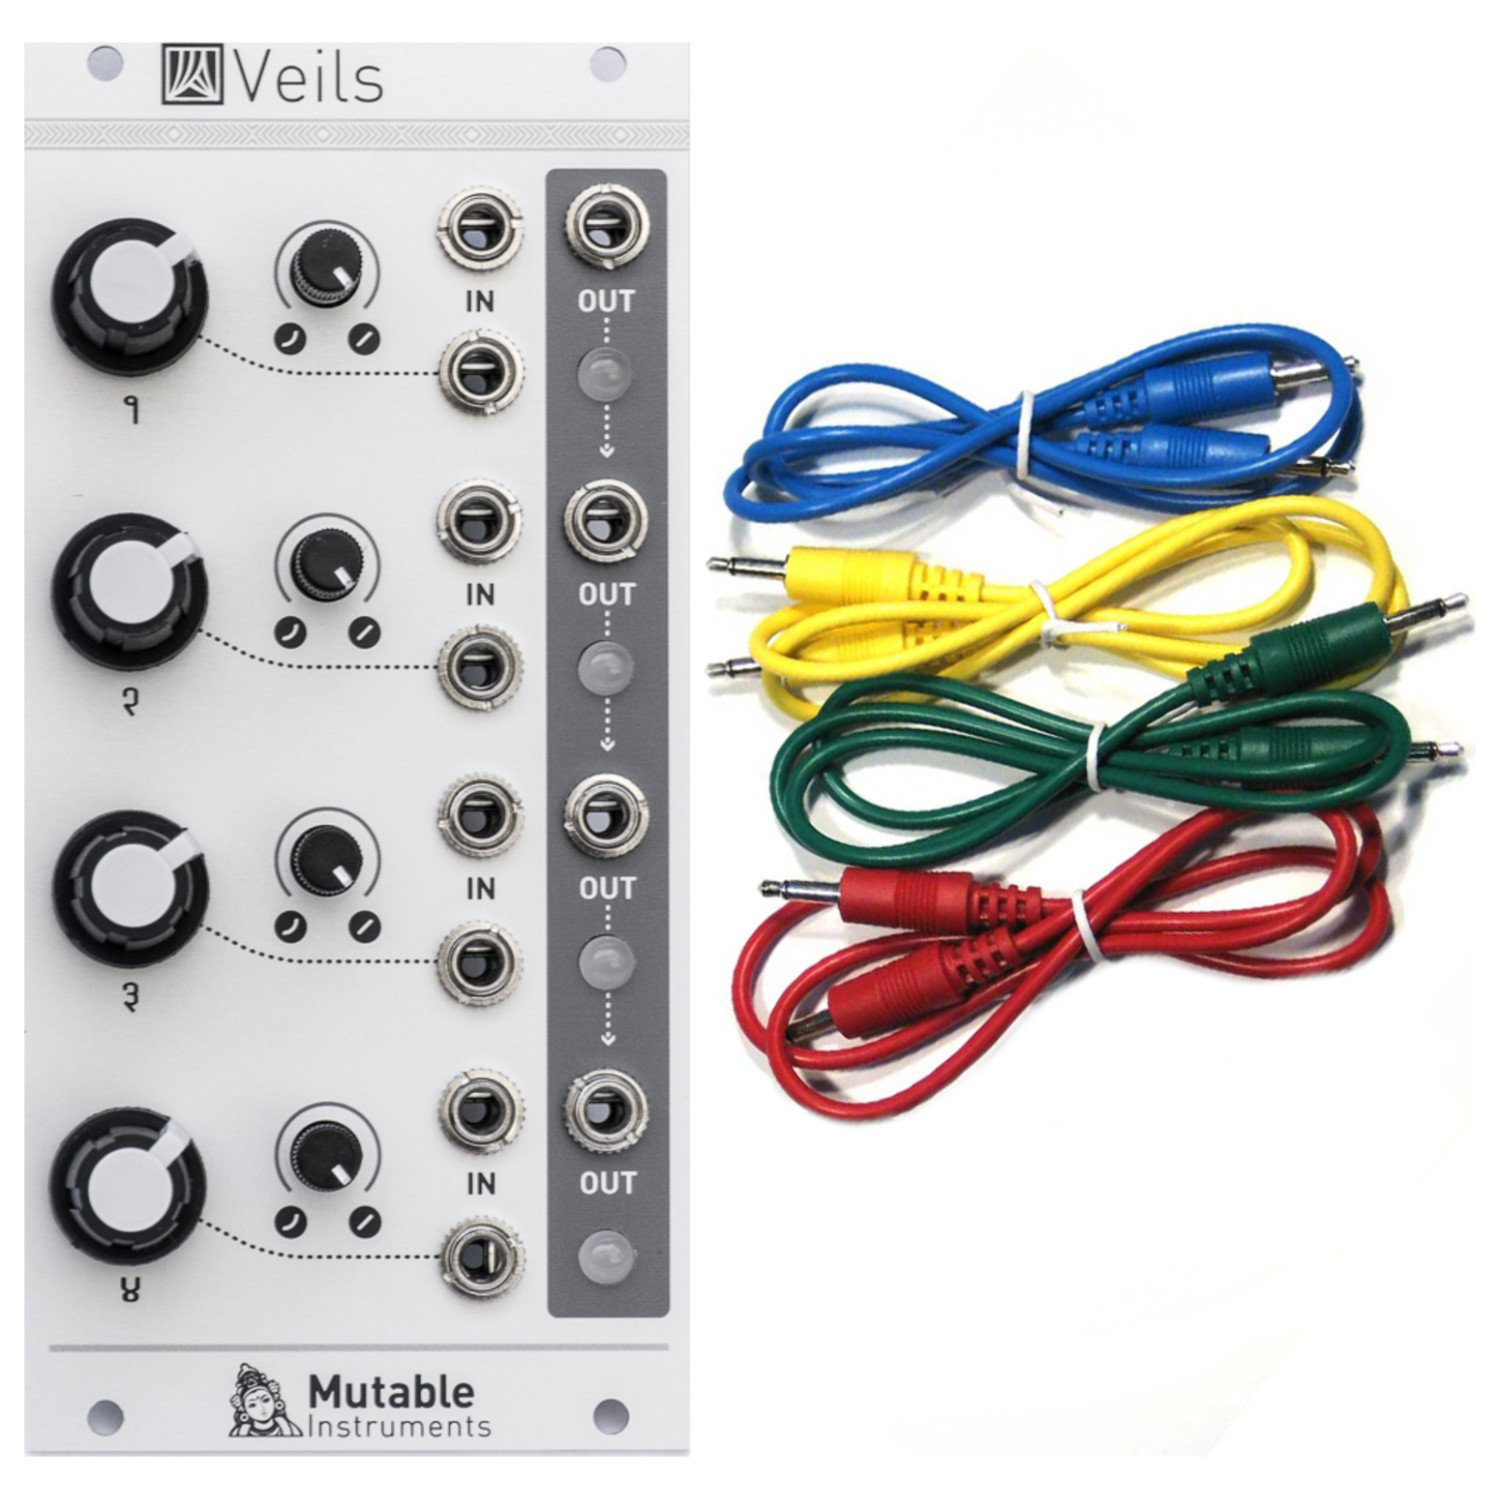 Mutable Instruments Veils Eurorack Module- Quad VCA w/ 4 Cables by Mutable Instruments (Image #1)